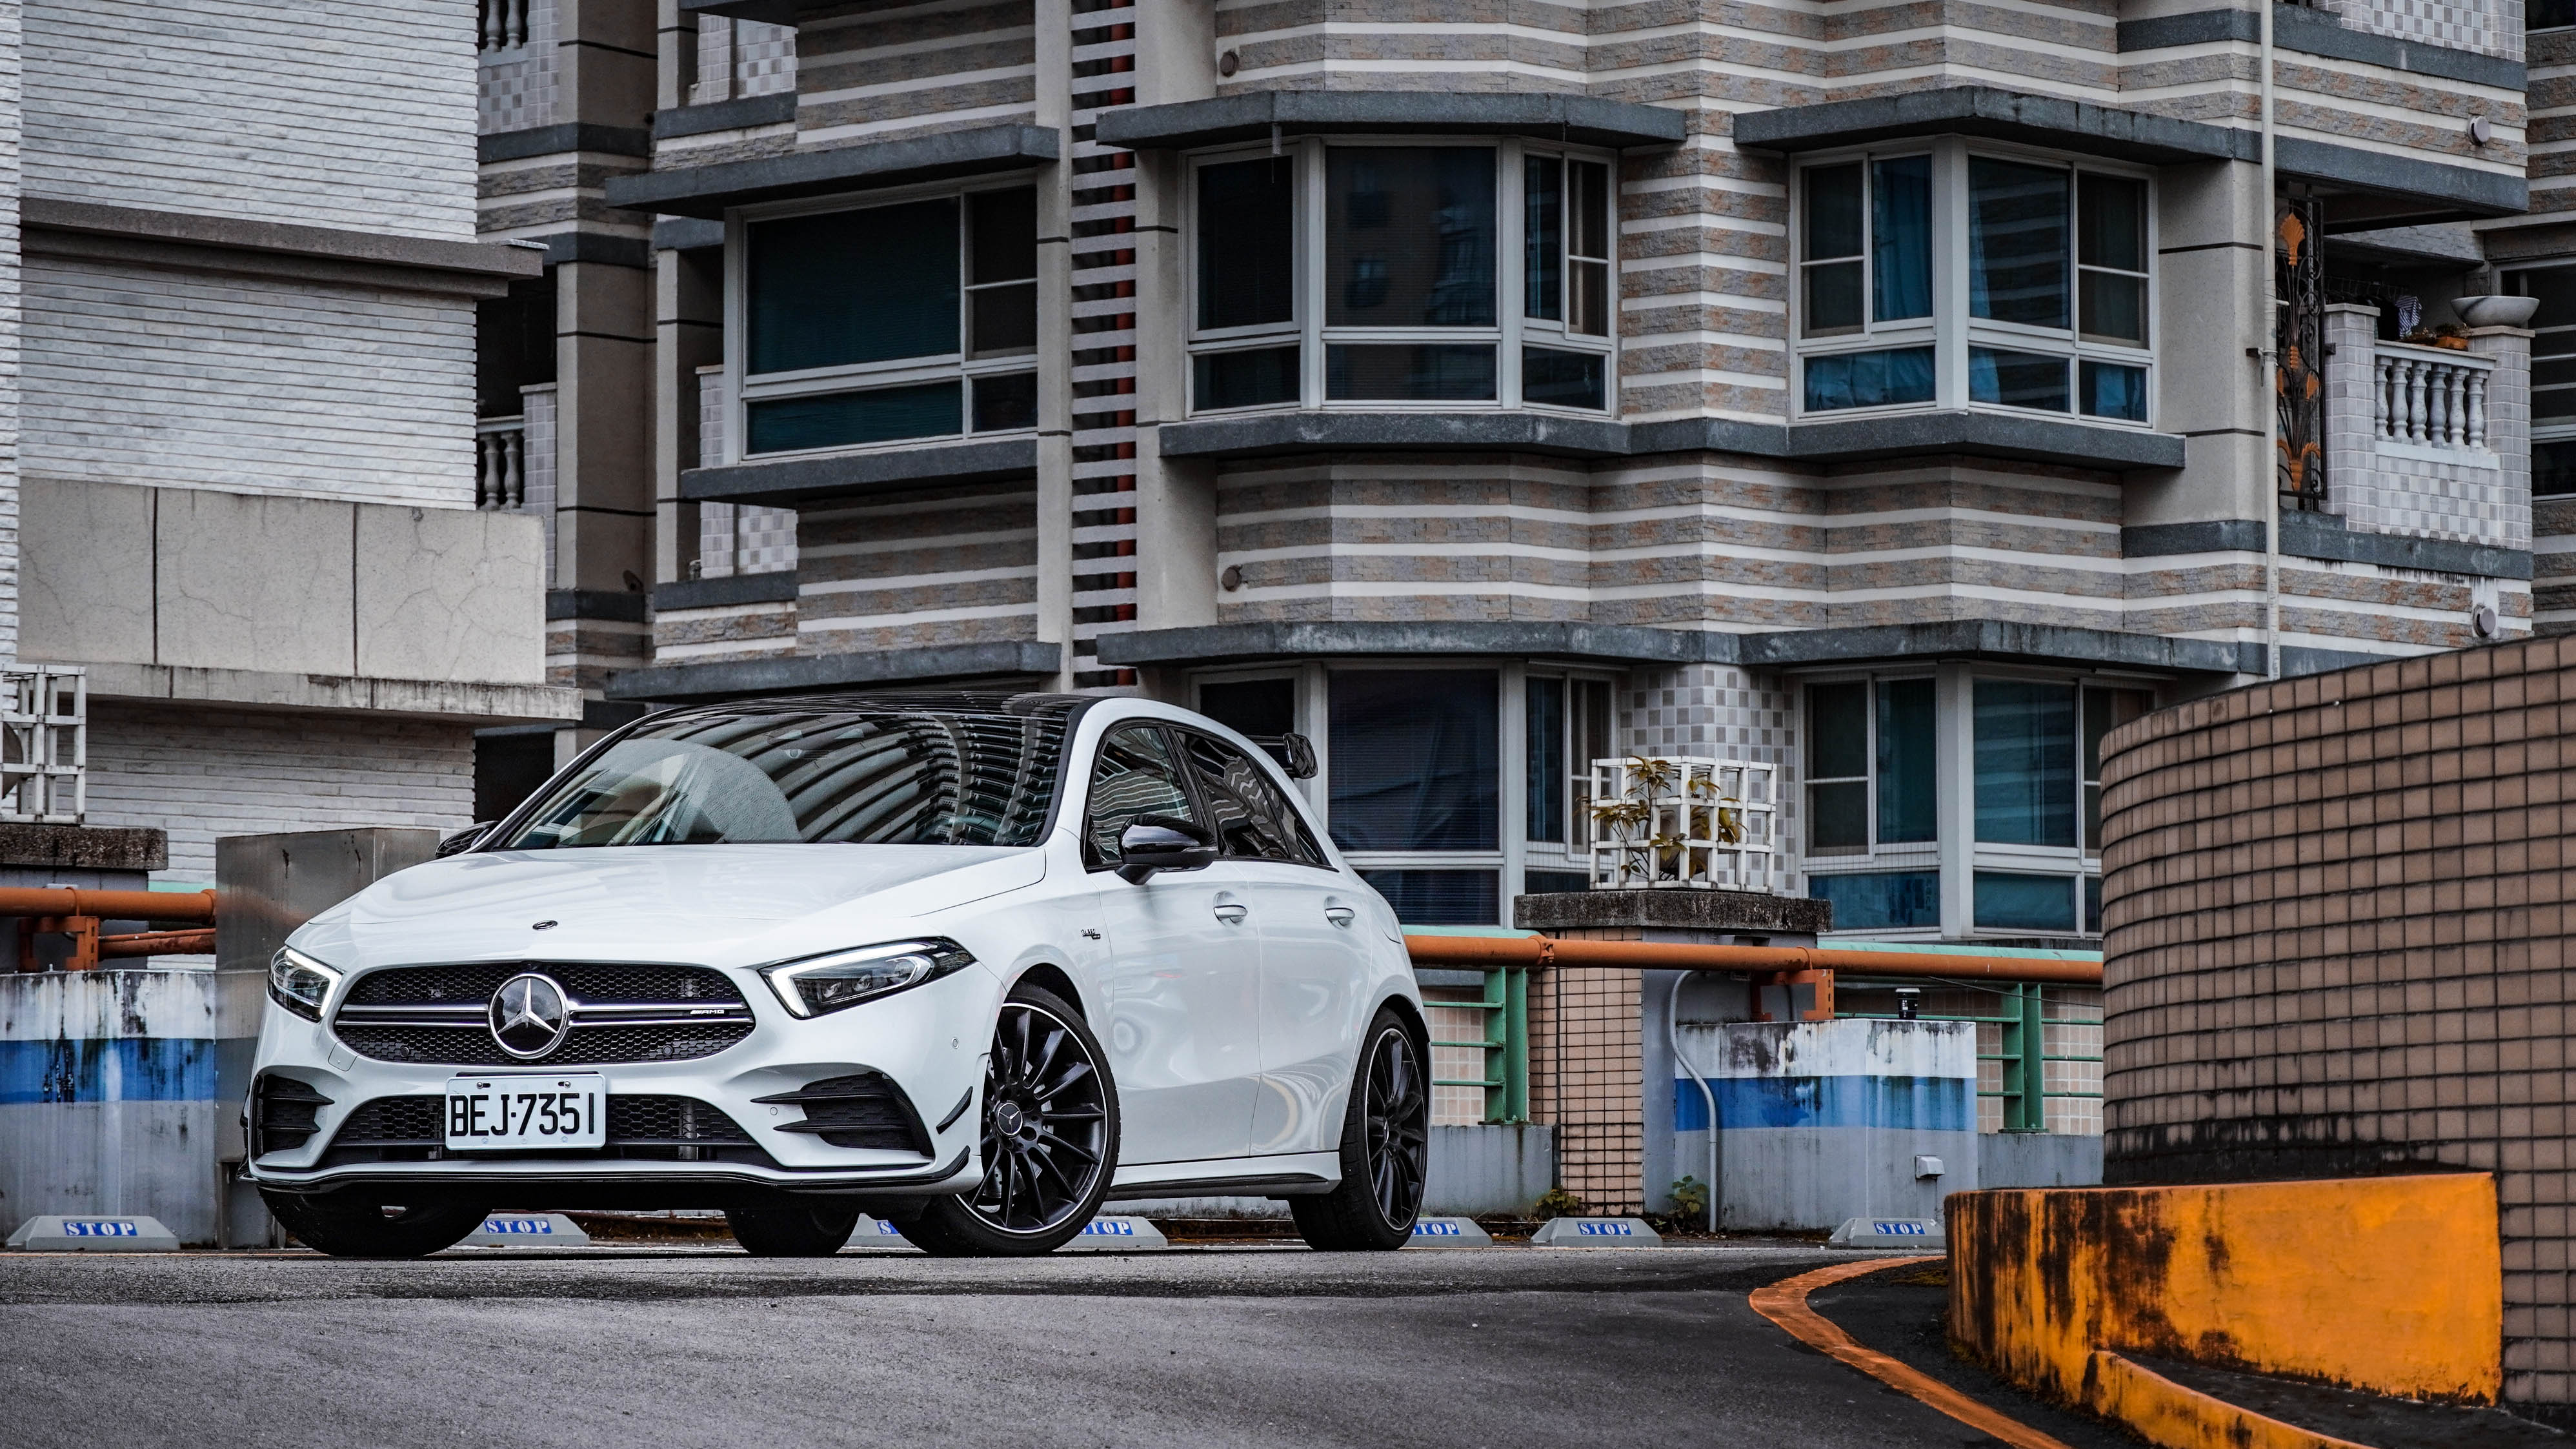 Mercedes-AMG A 35 4MATIC 售價 250 萬元起。